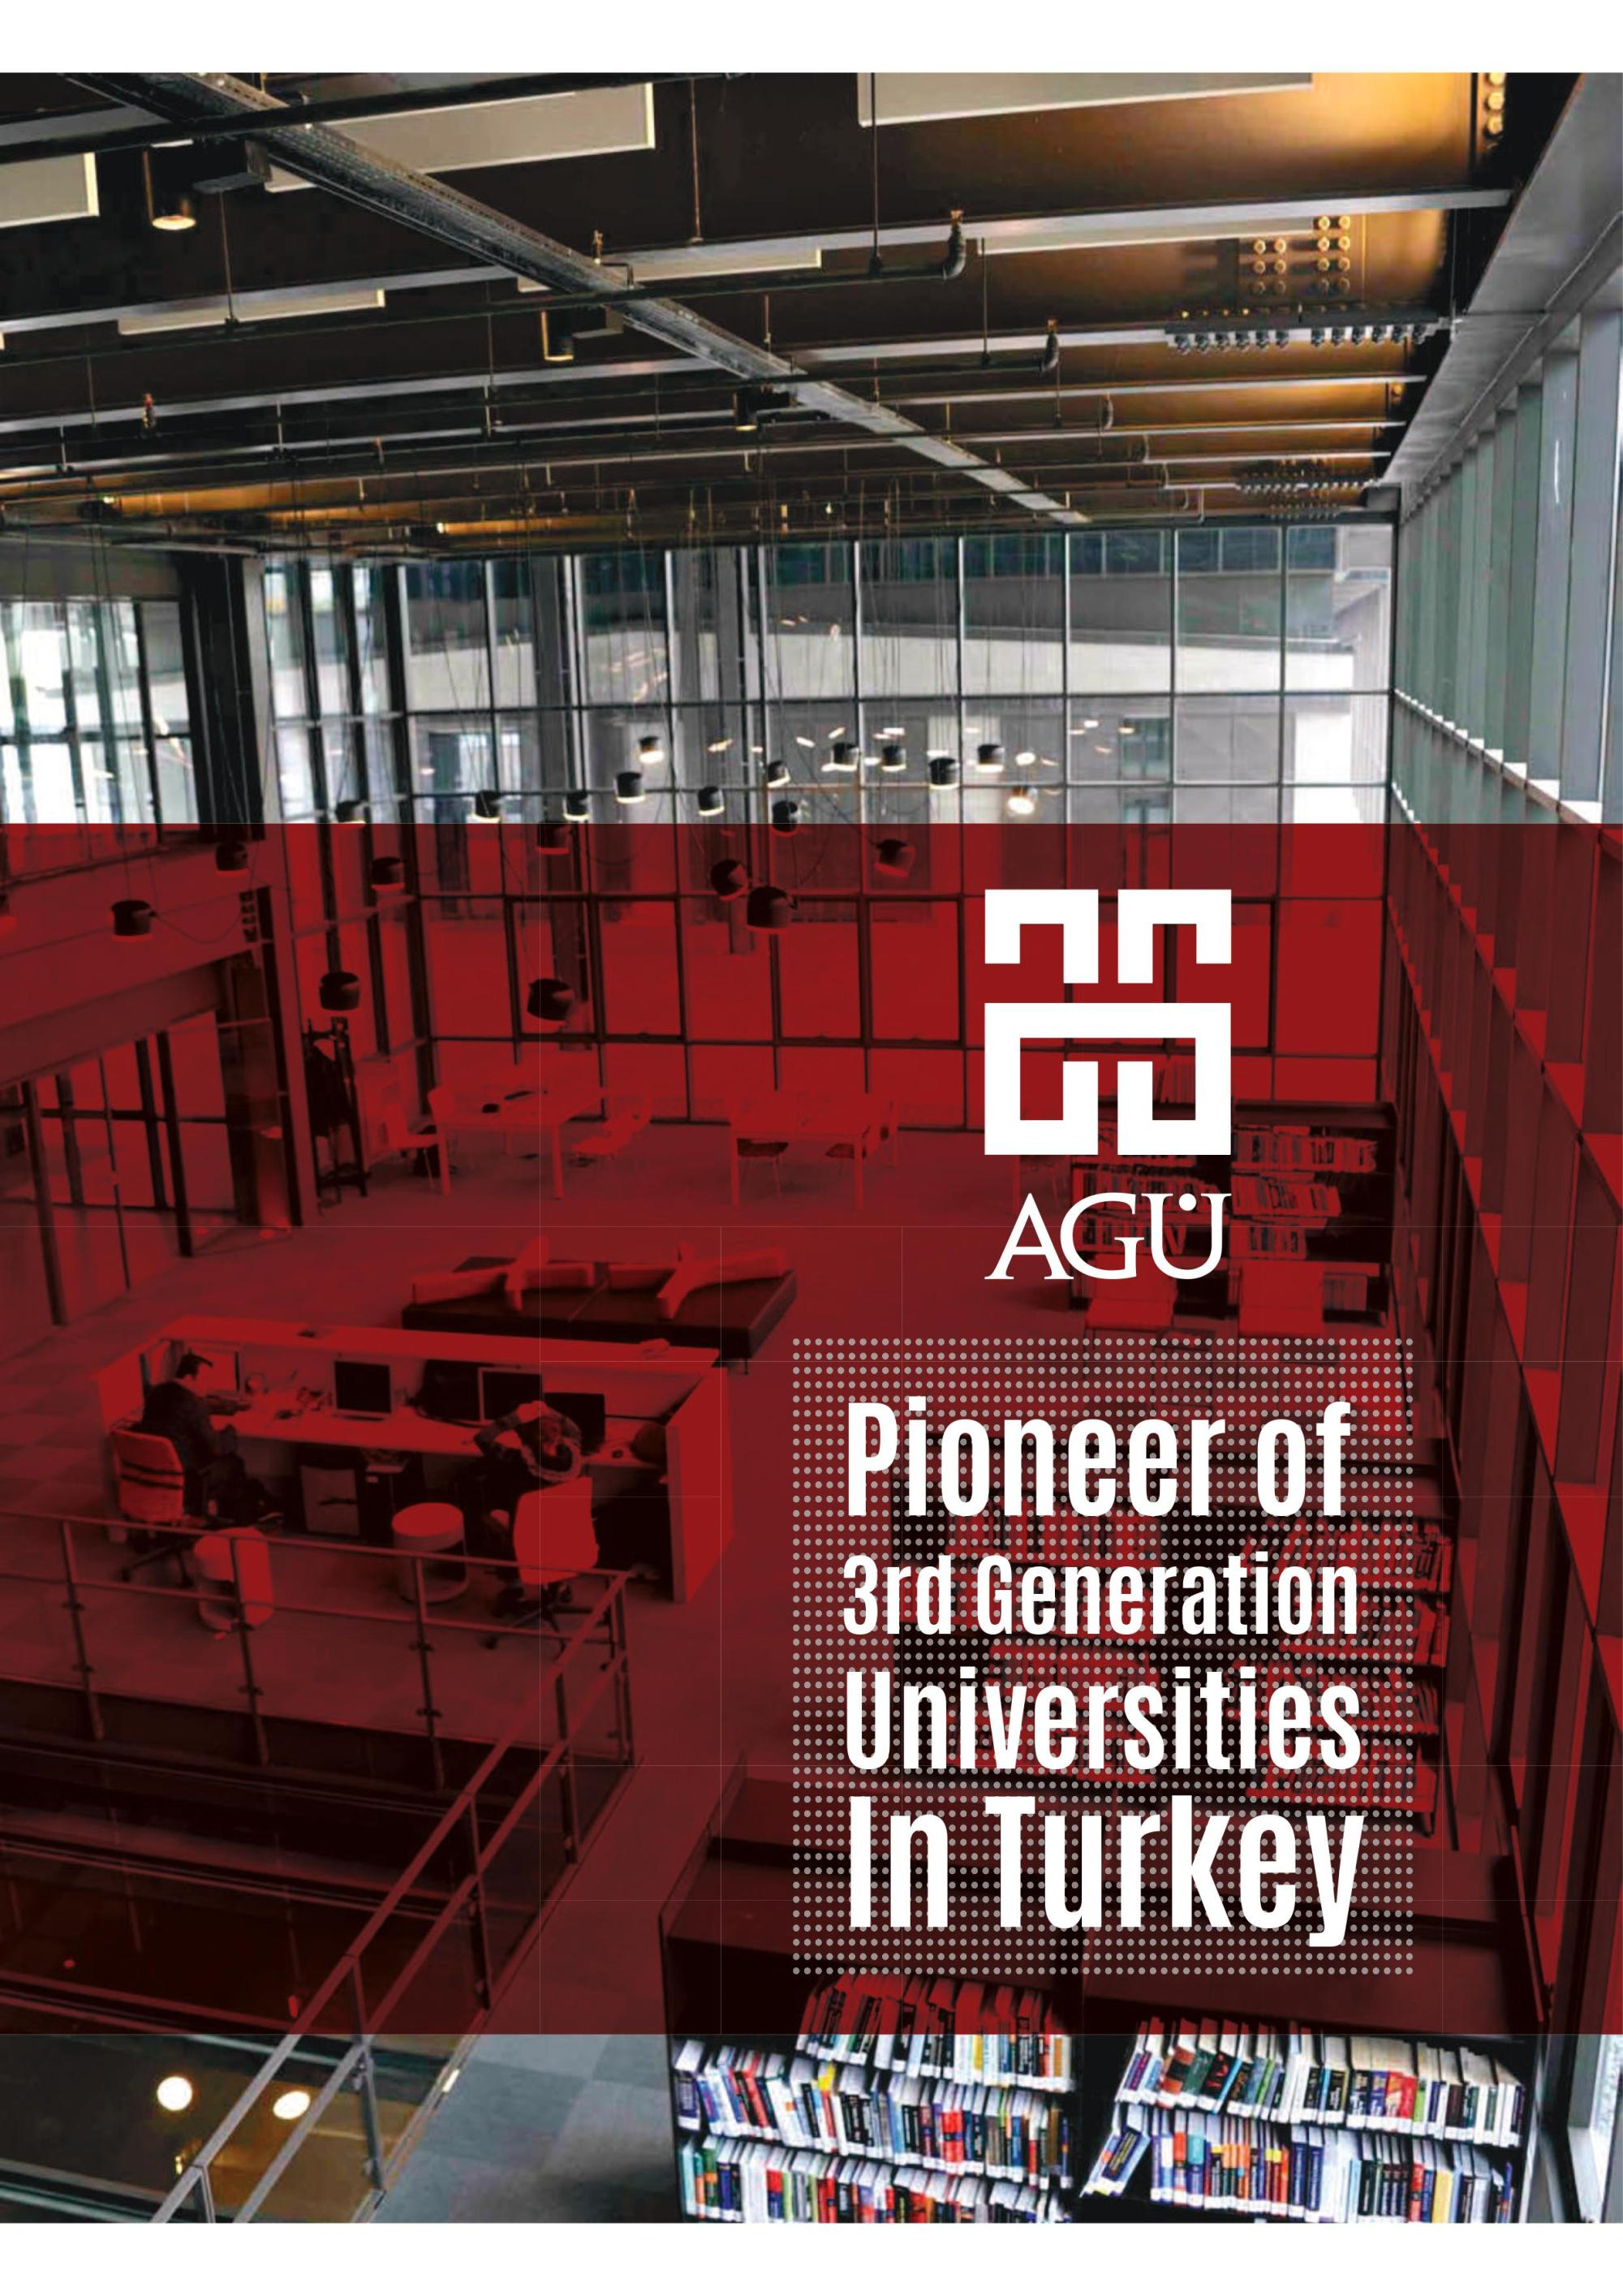 AGU, Abdullah Gül University, Pioneer, Third Generation, State University, Turkey, Informationa, Institutional, Presentation